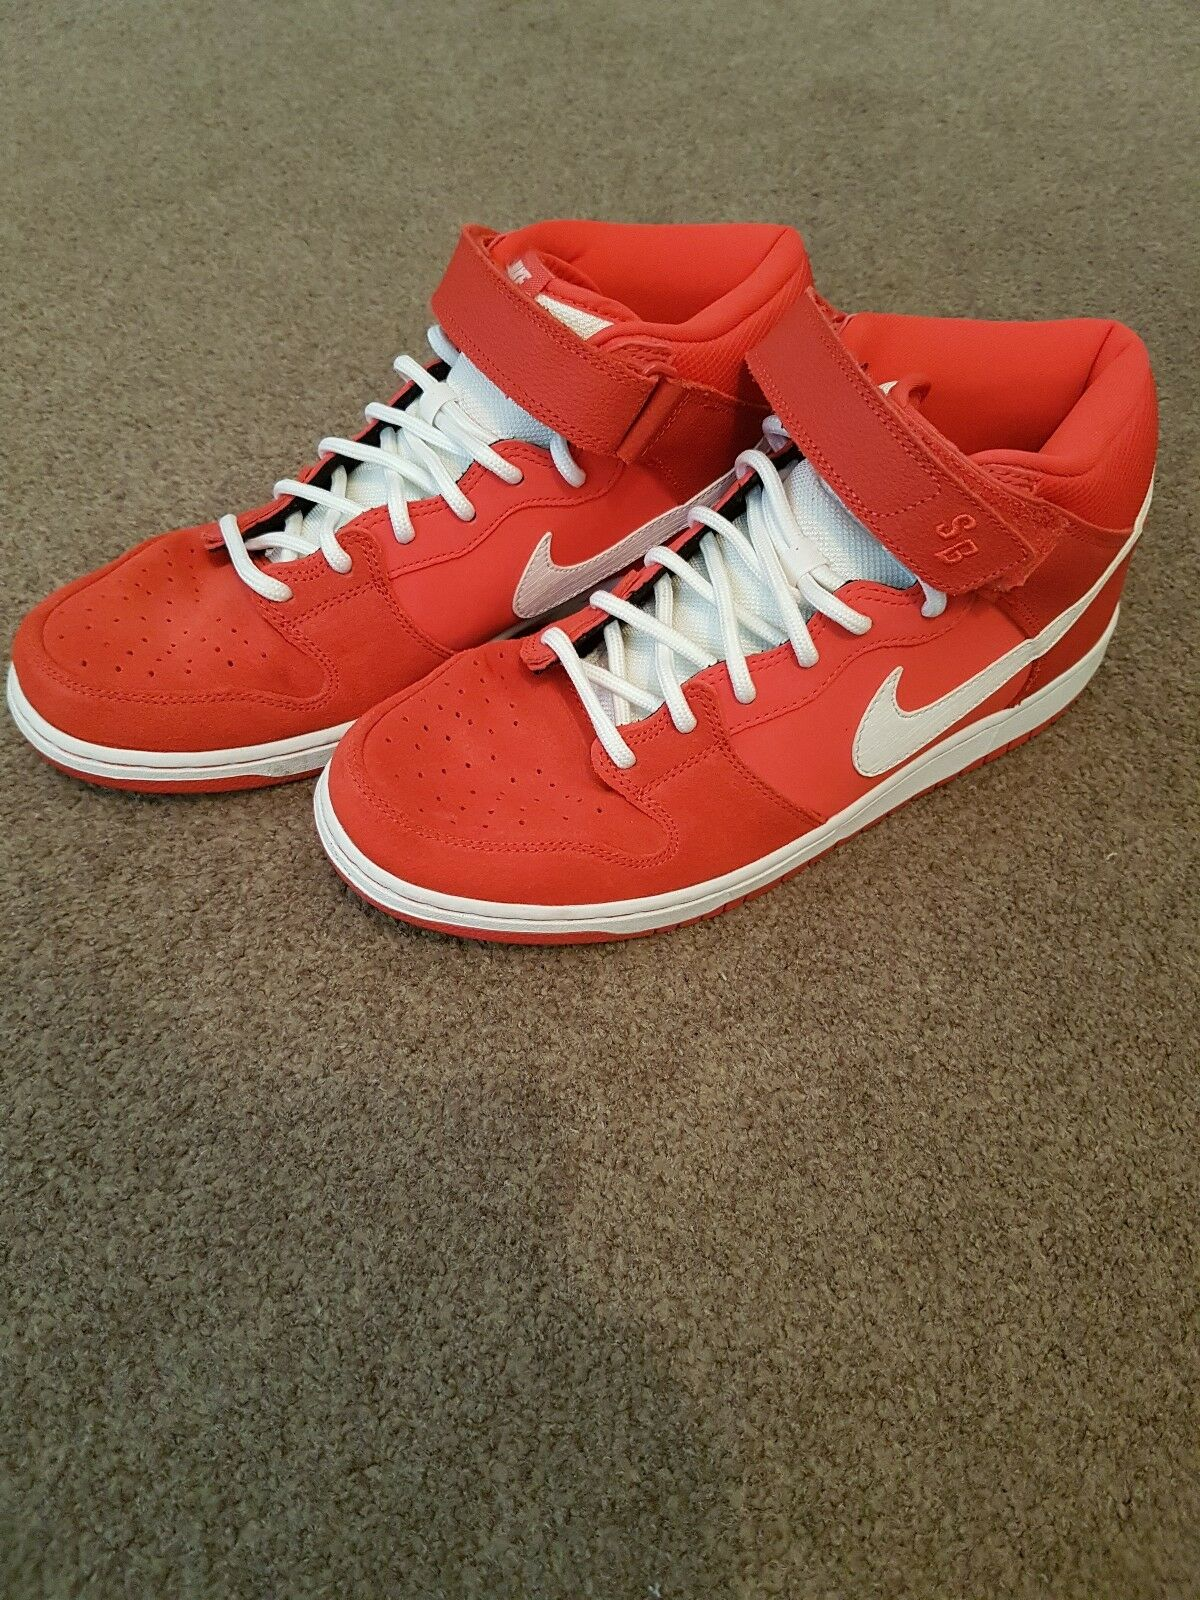 Mens Nike Zoom Air SB high Tops10